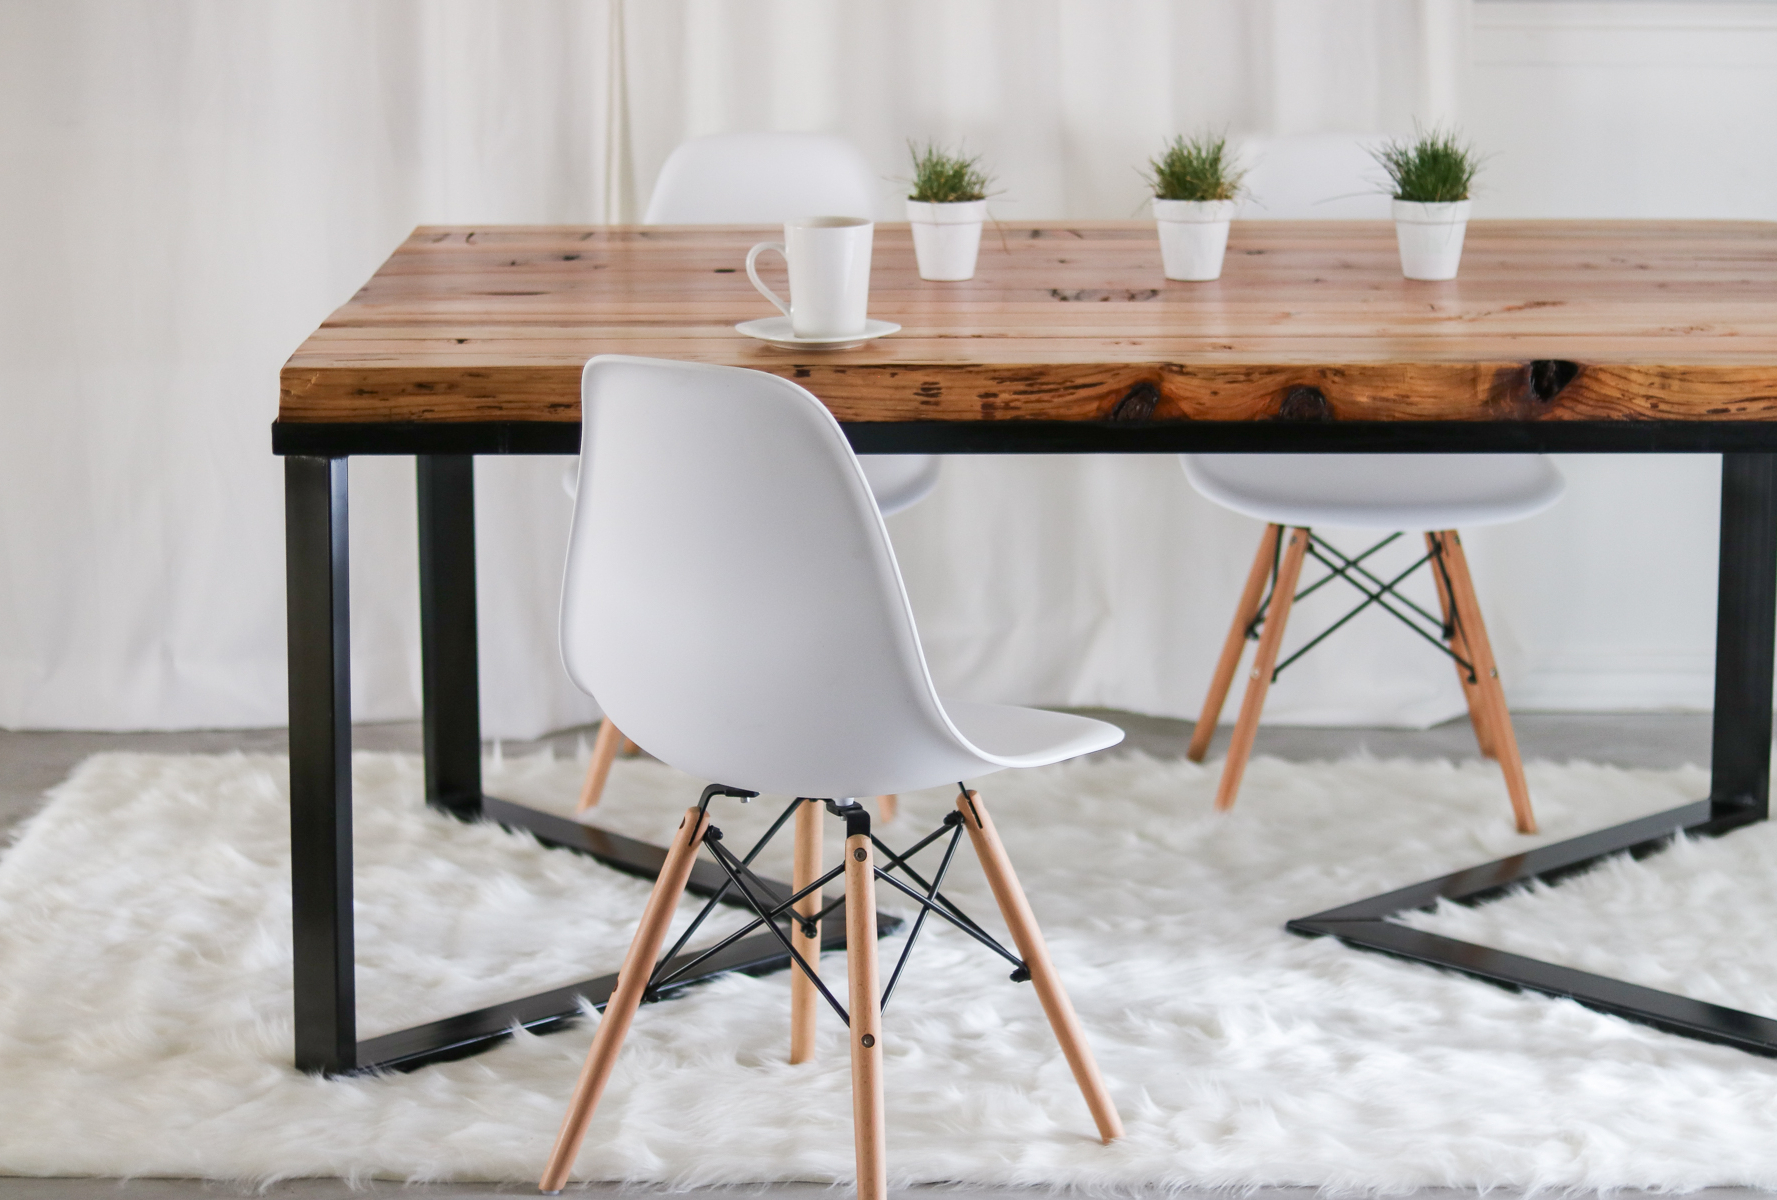 How I Made My Dining Table - Under $60- Diy Table - Scandinavian regarding Most Popular Iron Wood Dining Tables